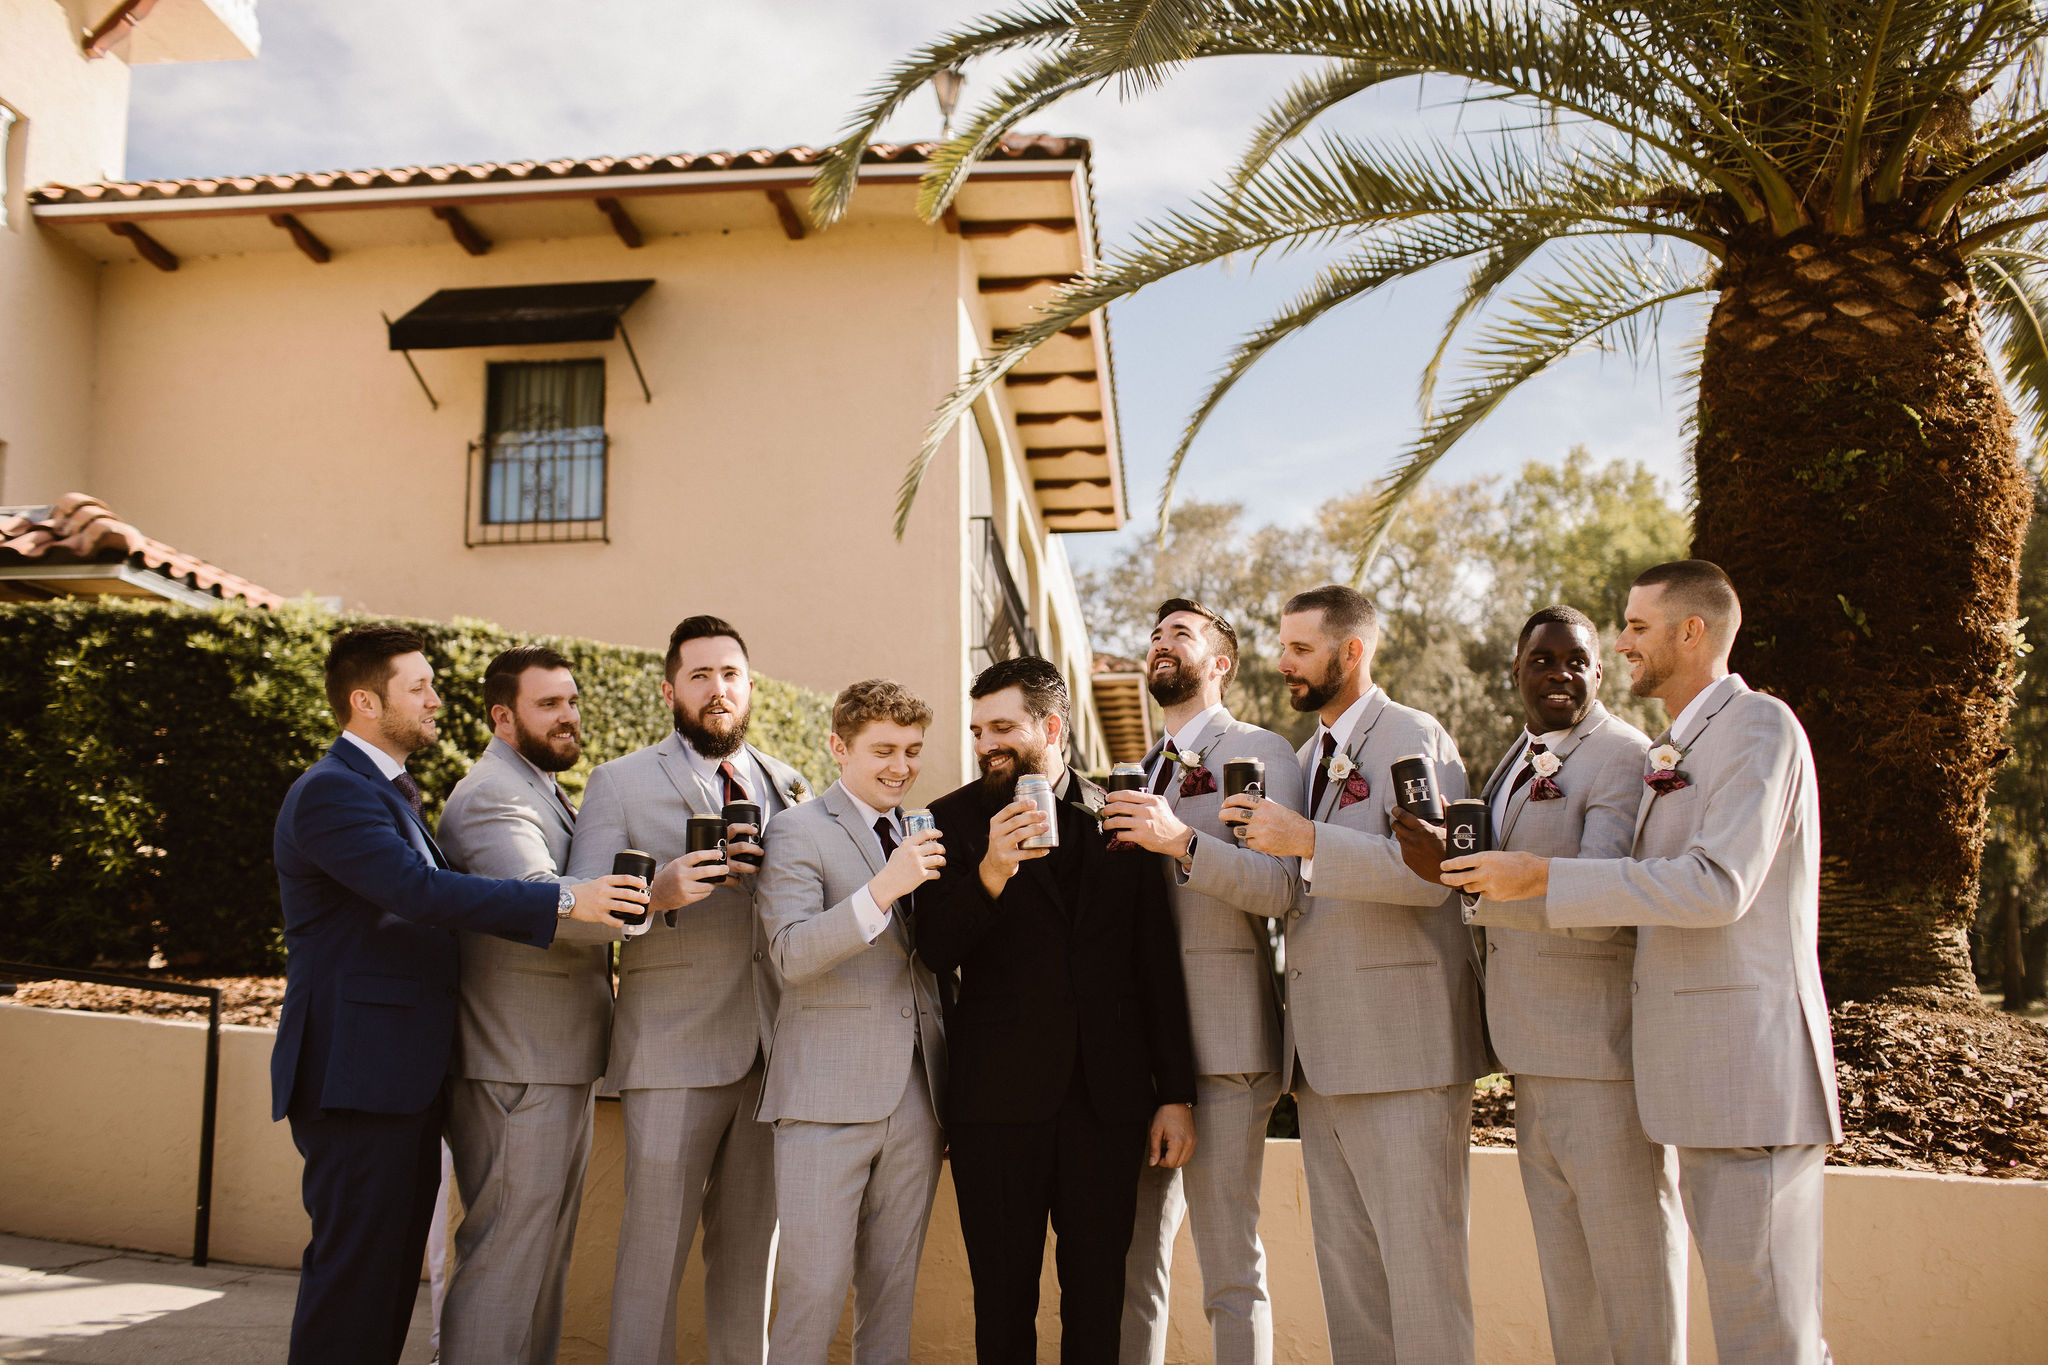 groom and groomsmen getting ready for wedding day